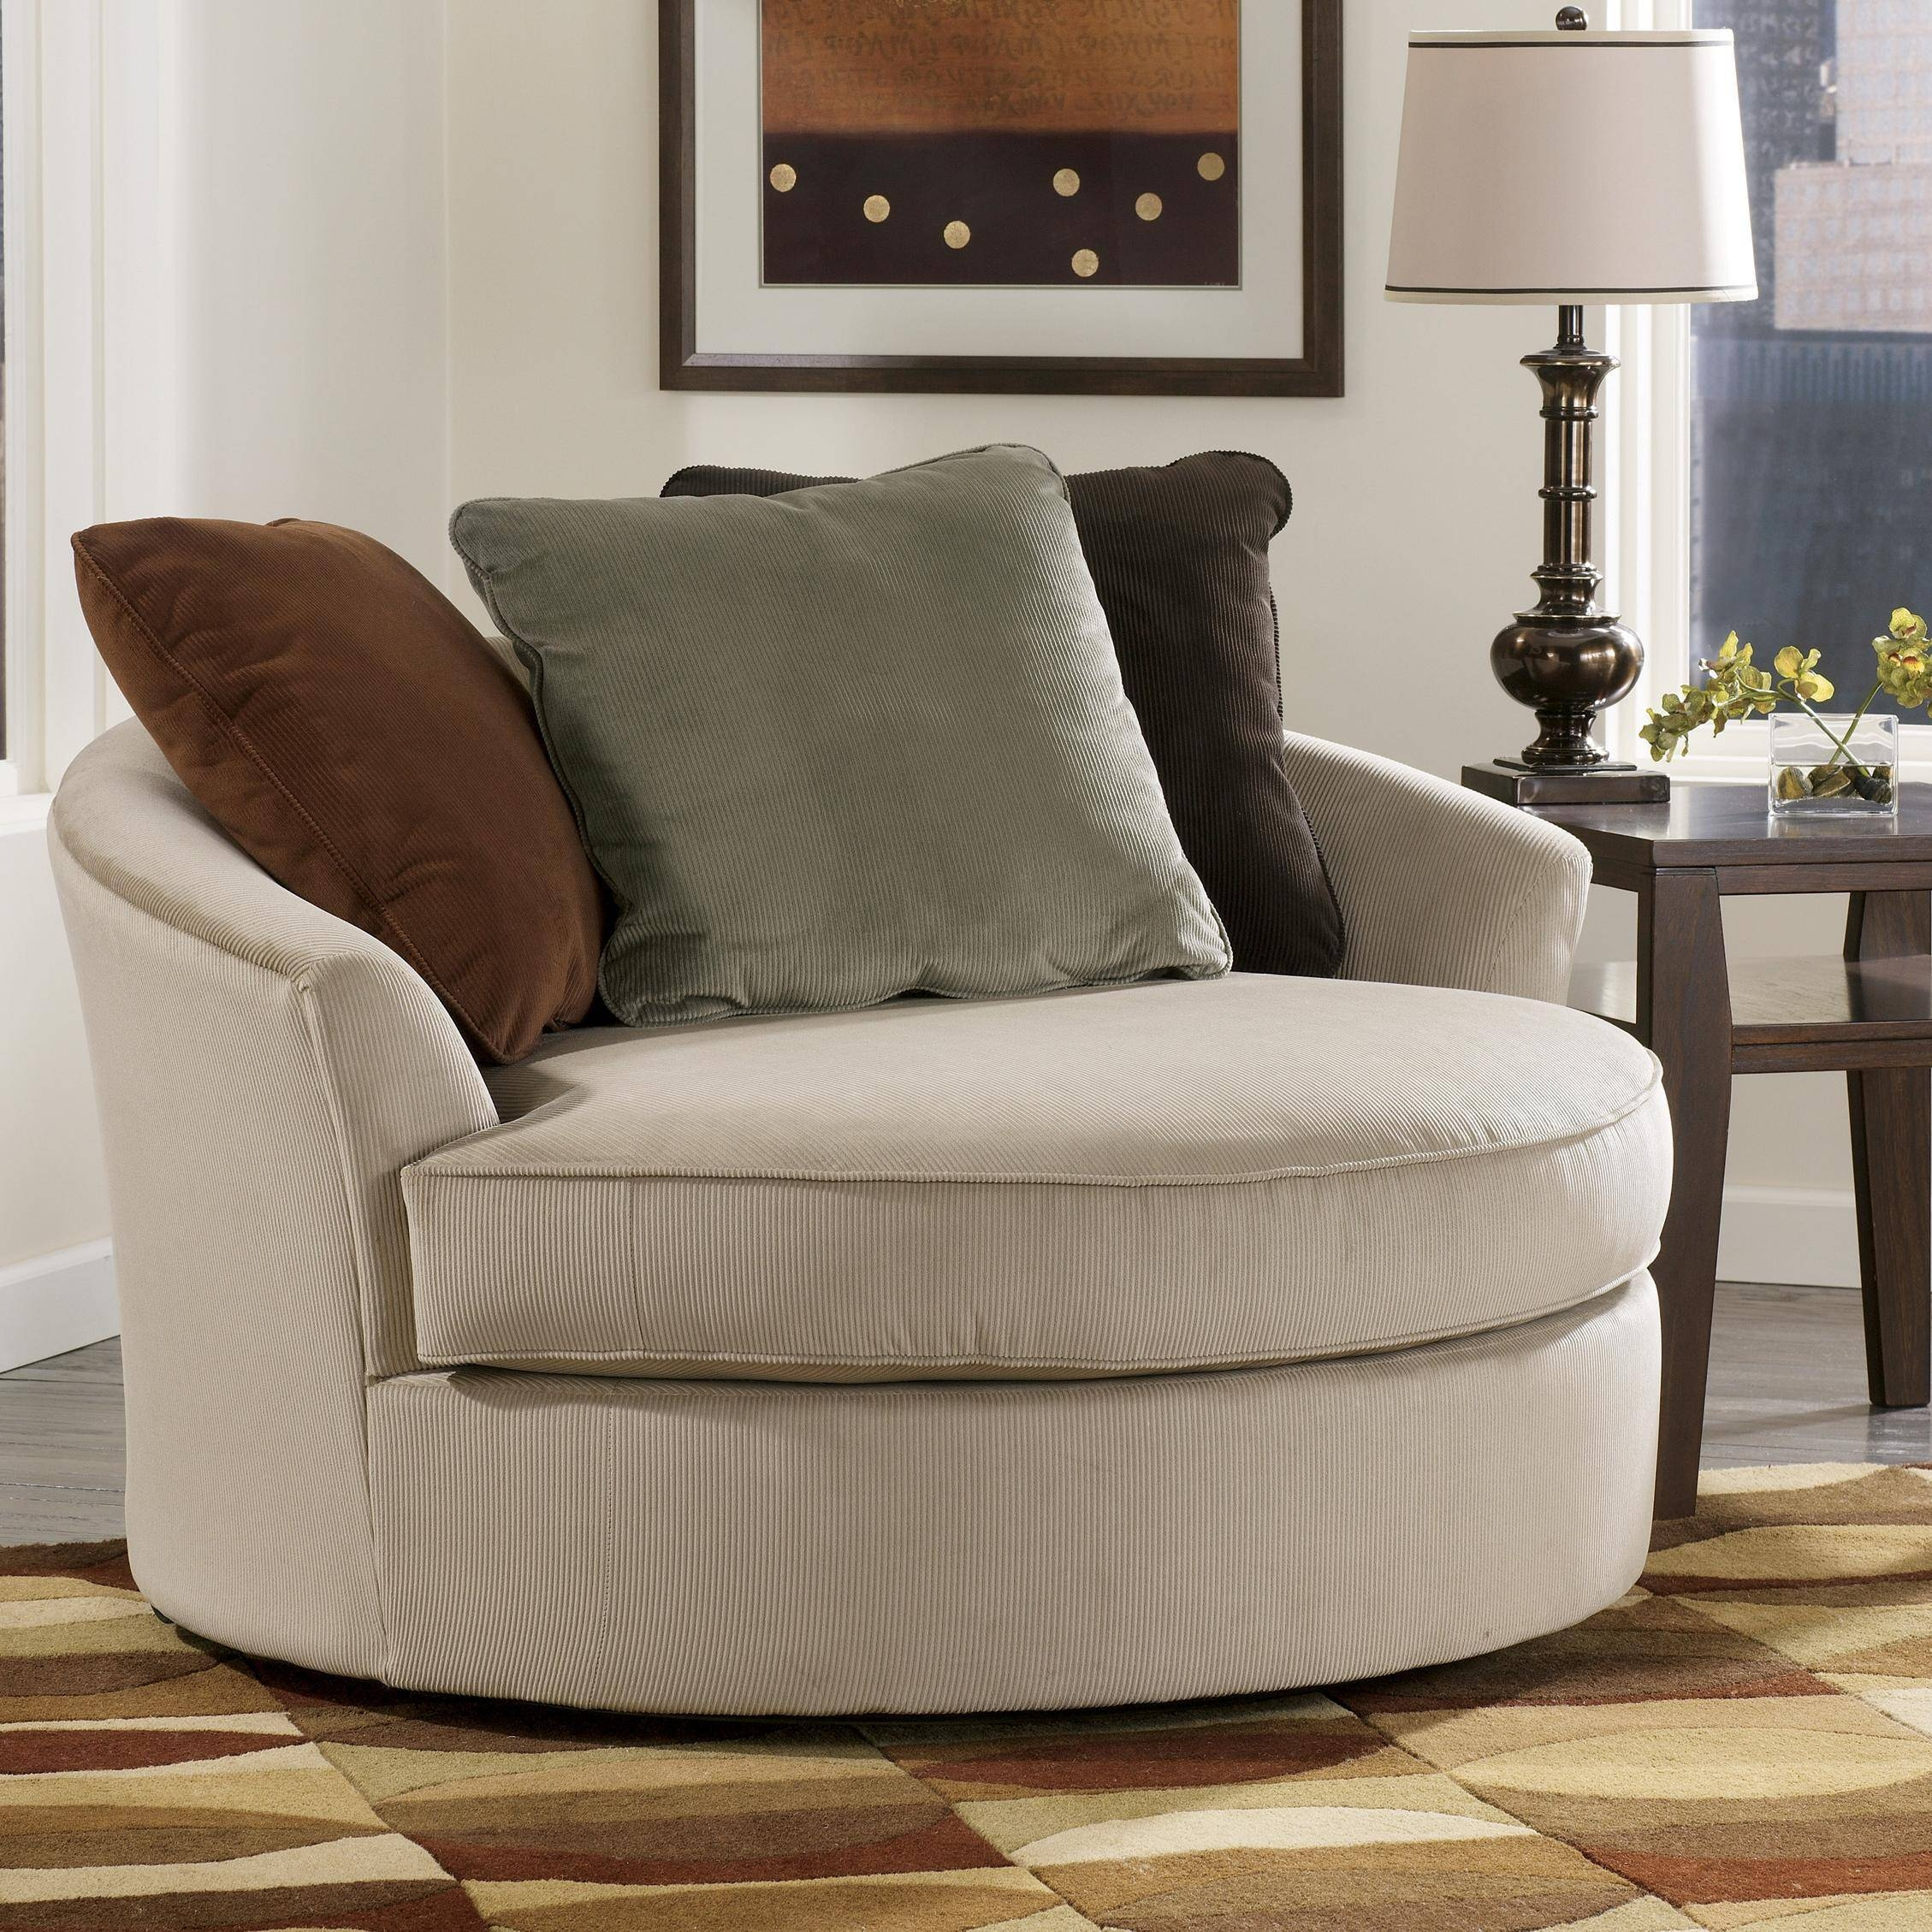 Annora Accent Chair. Best 25 Living Room Accent Chairs Ideas On with regard to Big Sofa Chairs (Image 1 of 30)